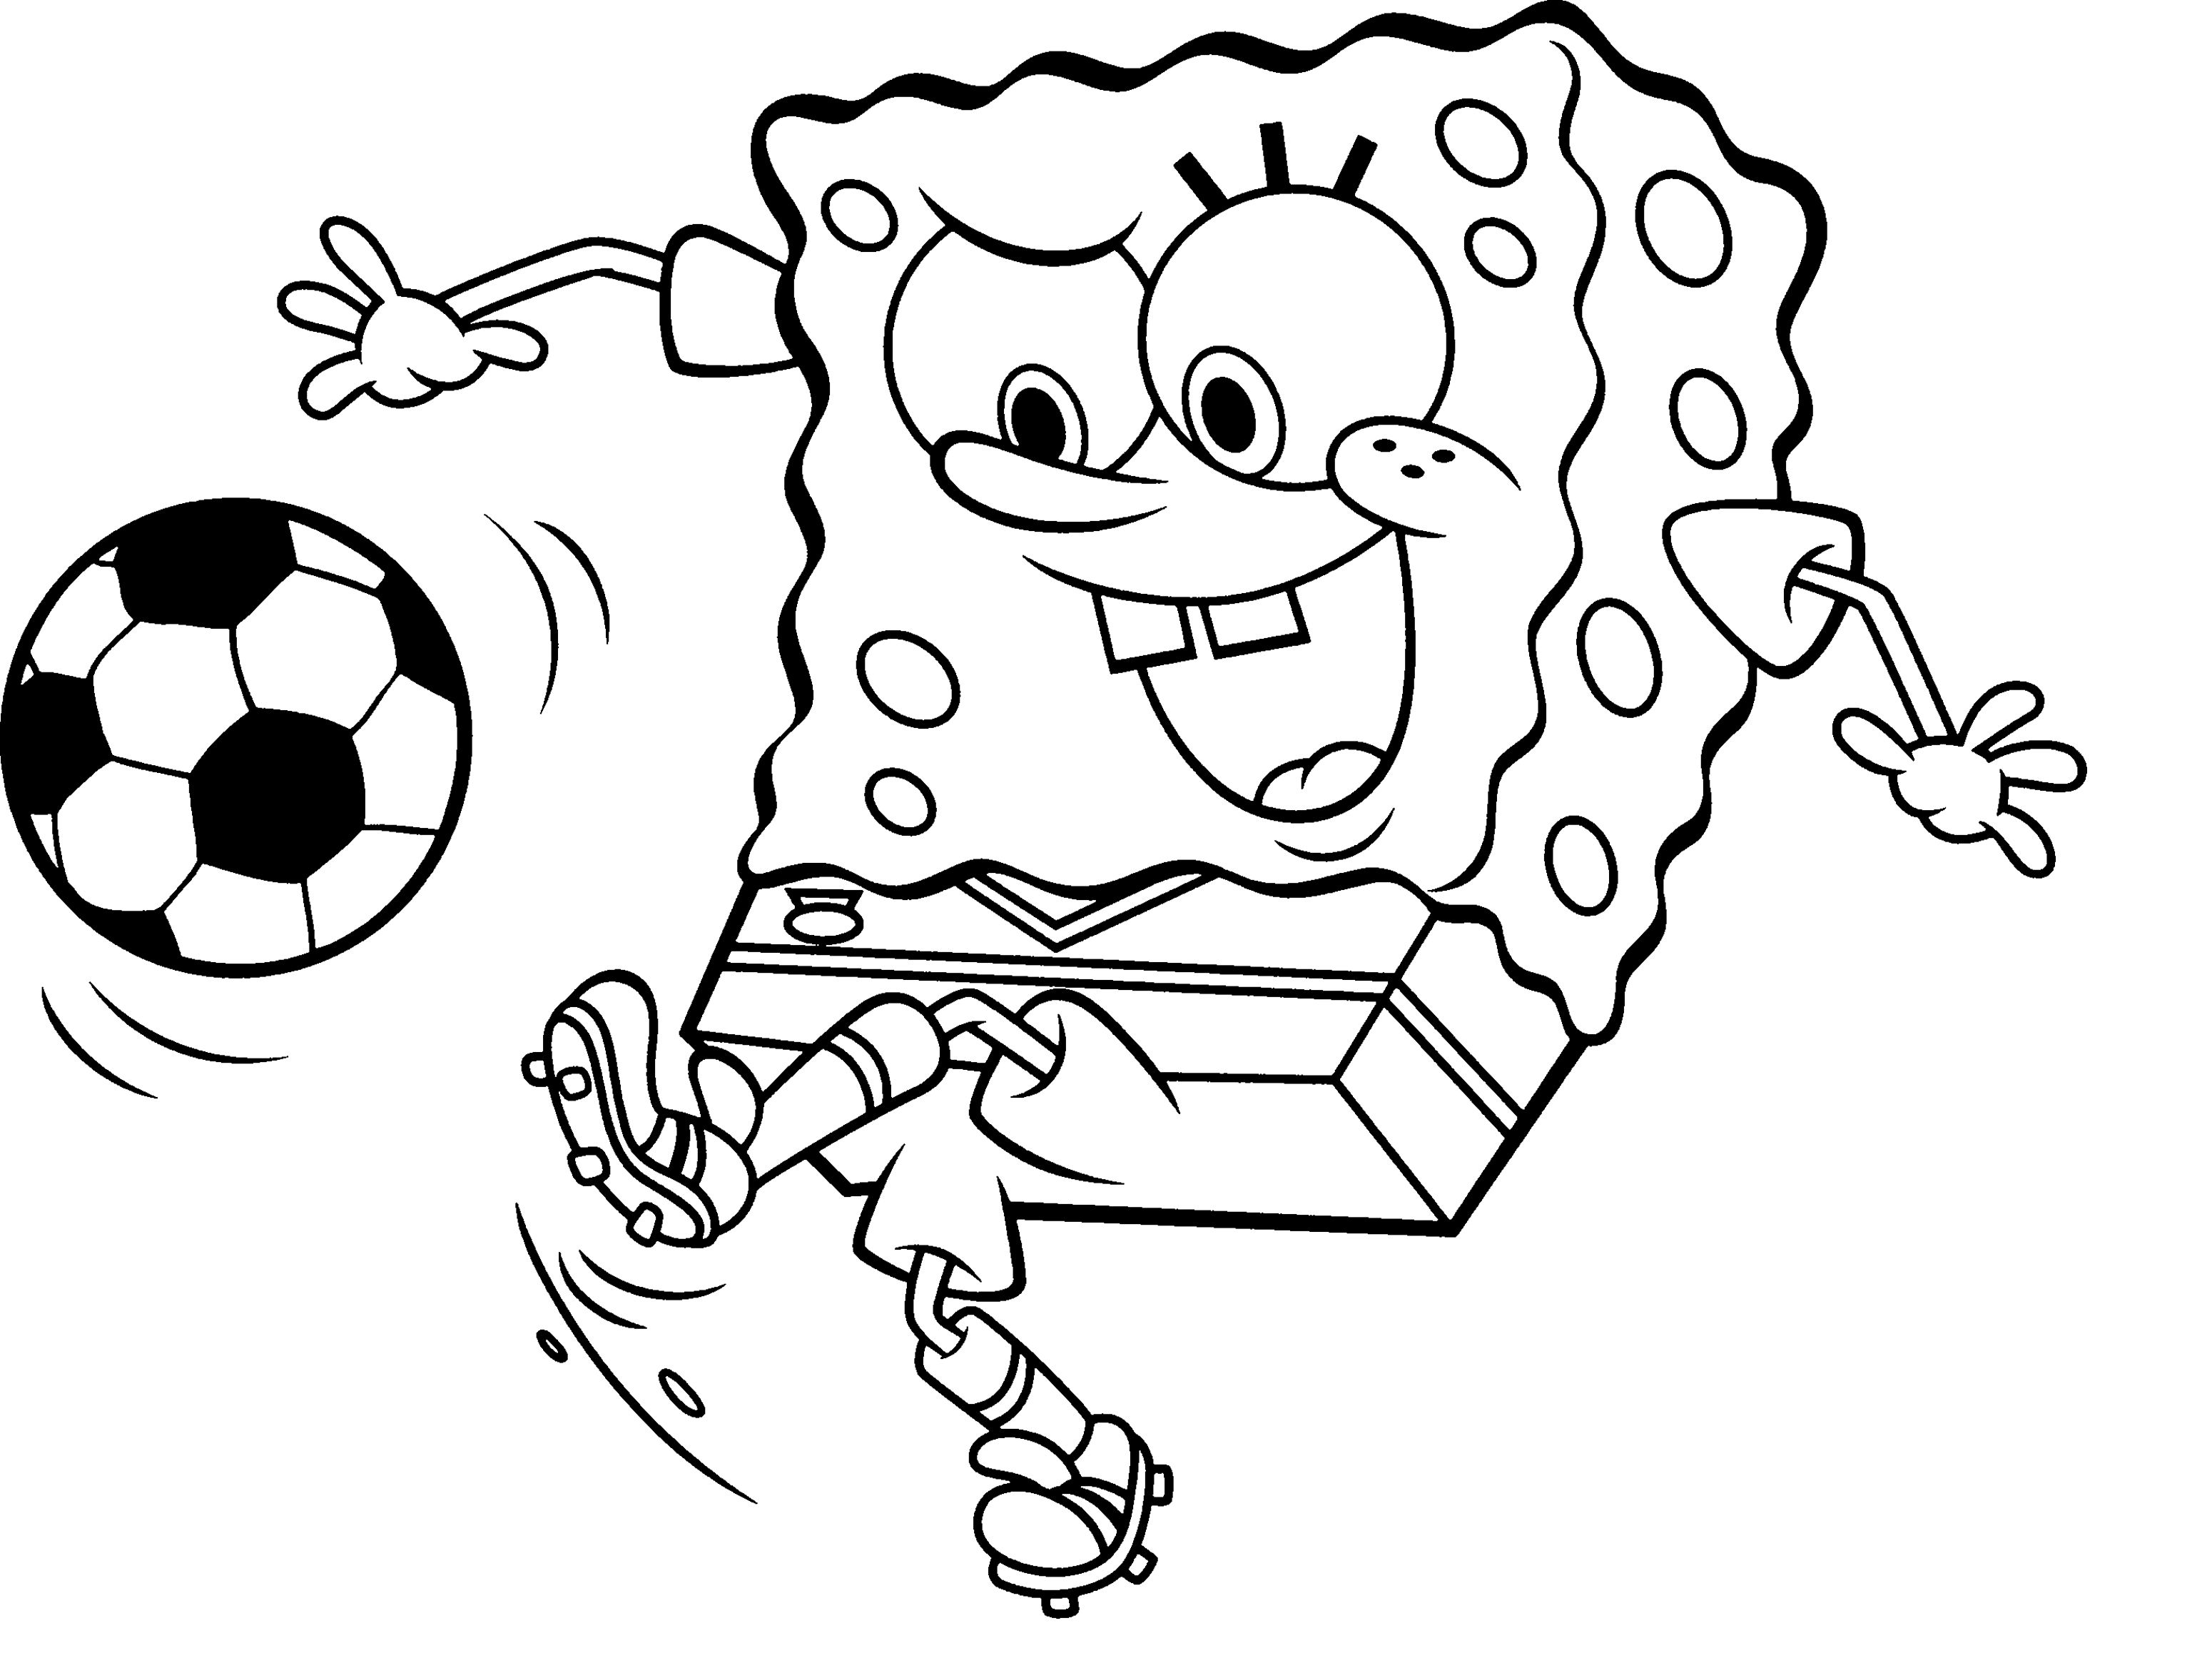 Pages Printable Spongebob Squarepants Coloring For Kids At Free